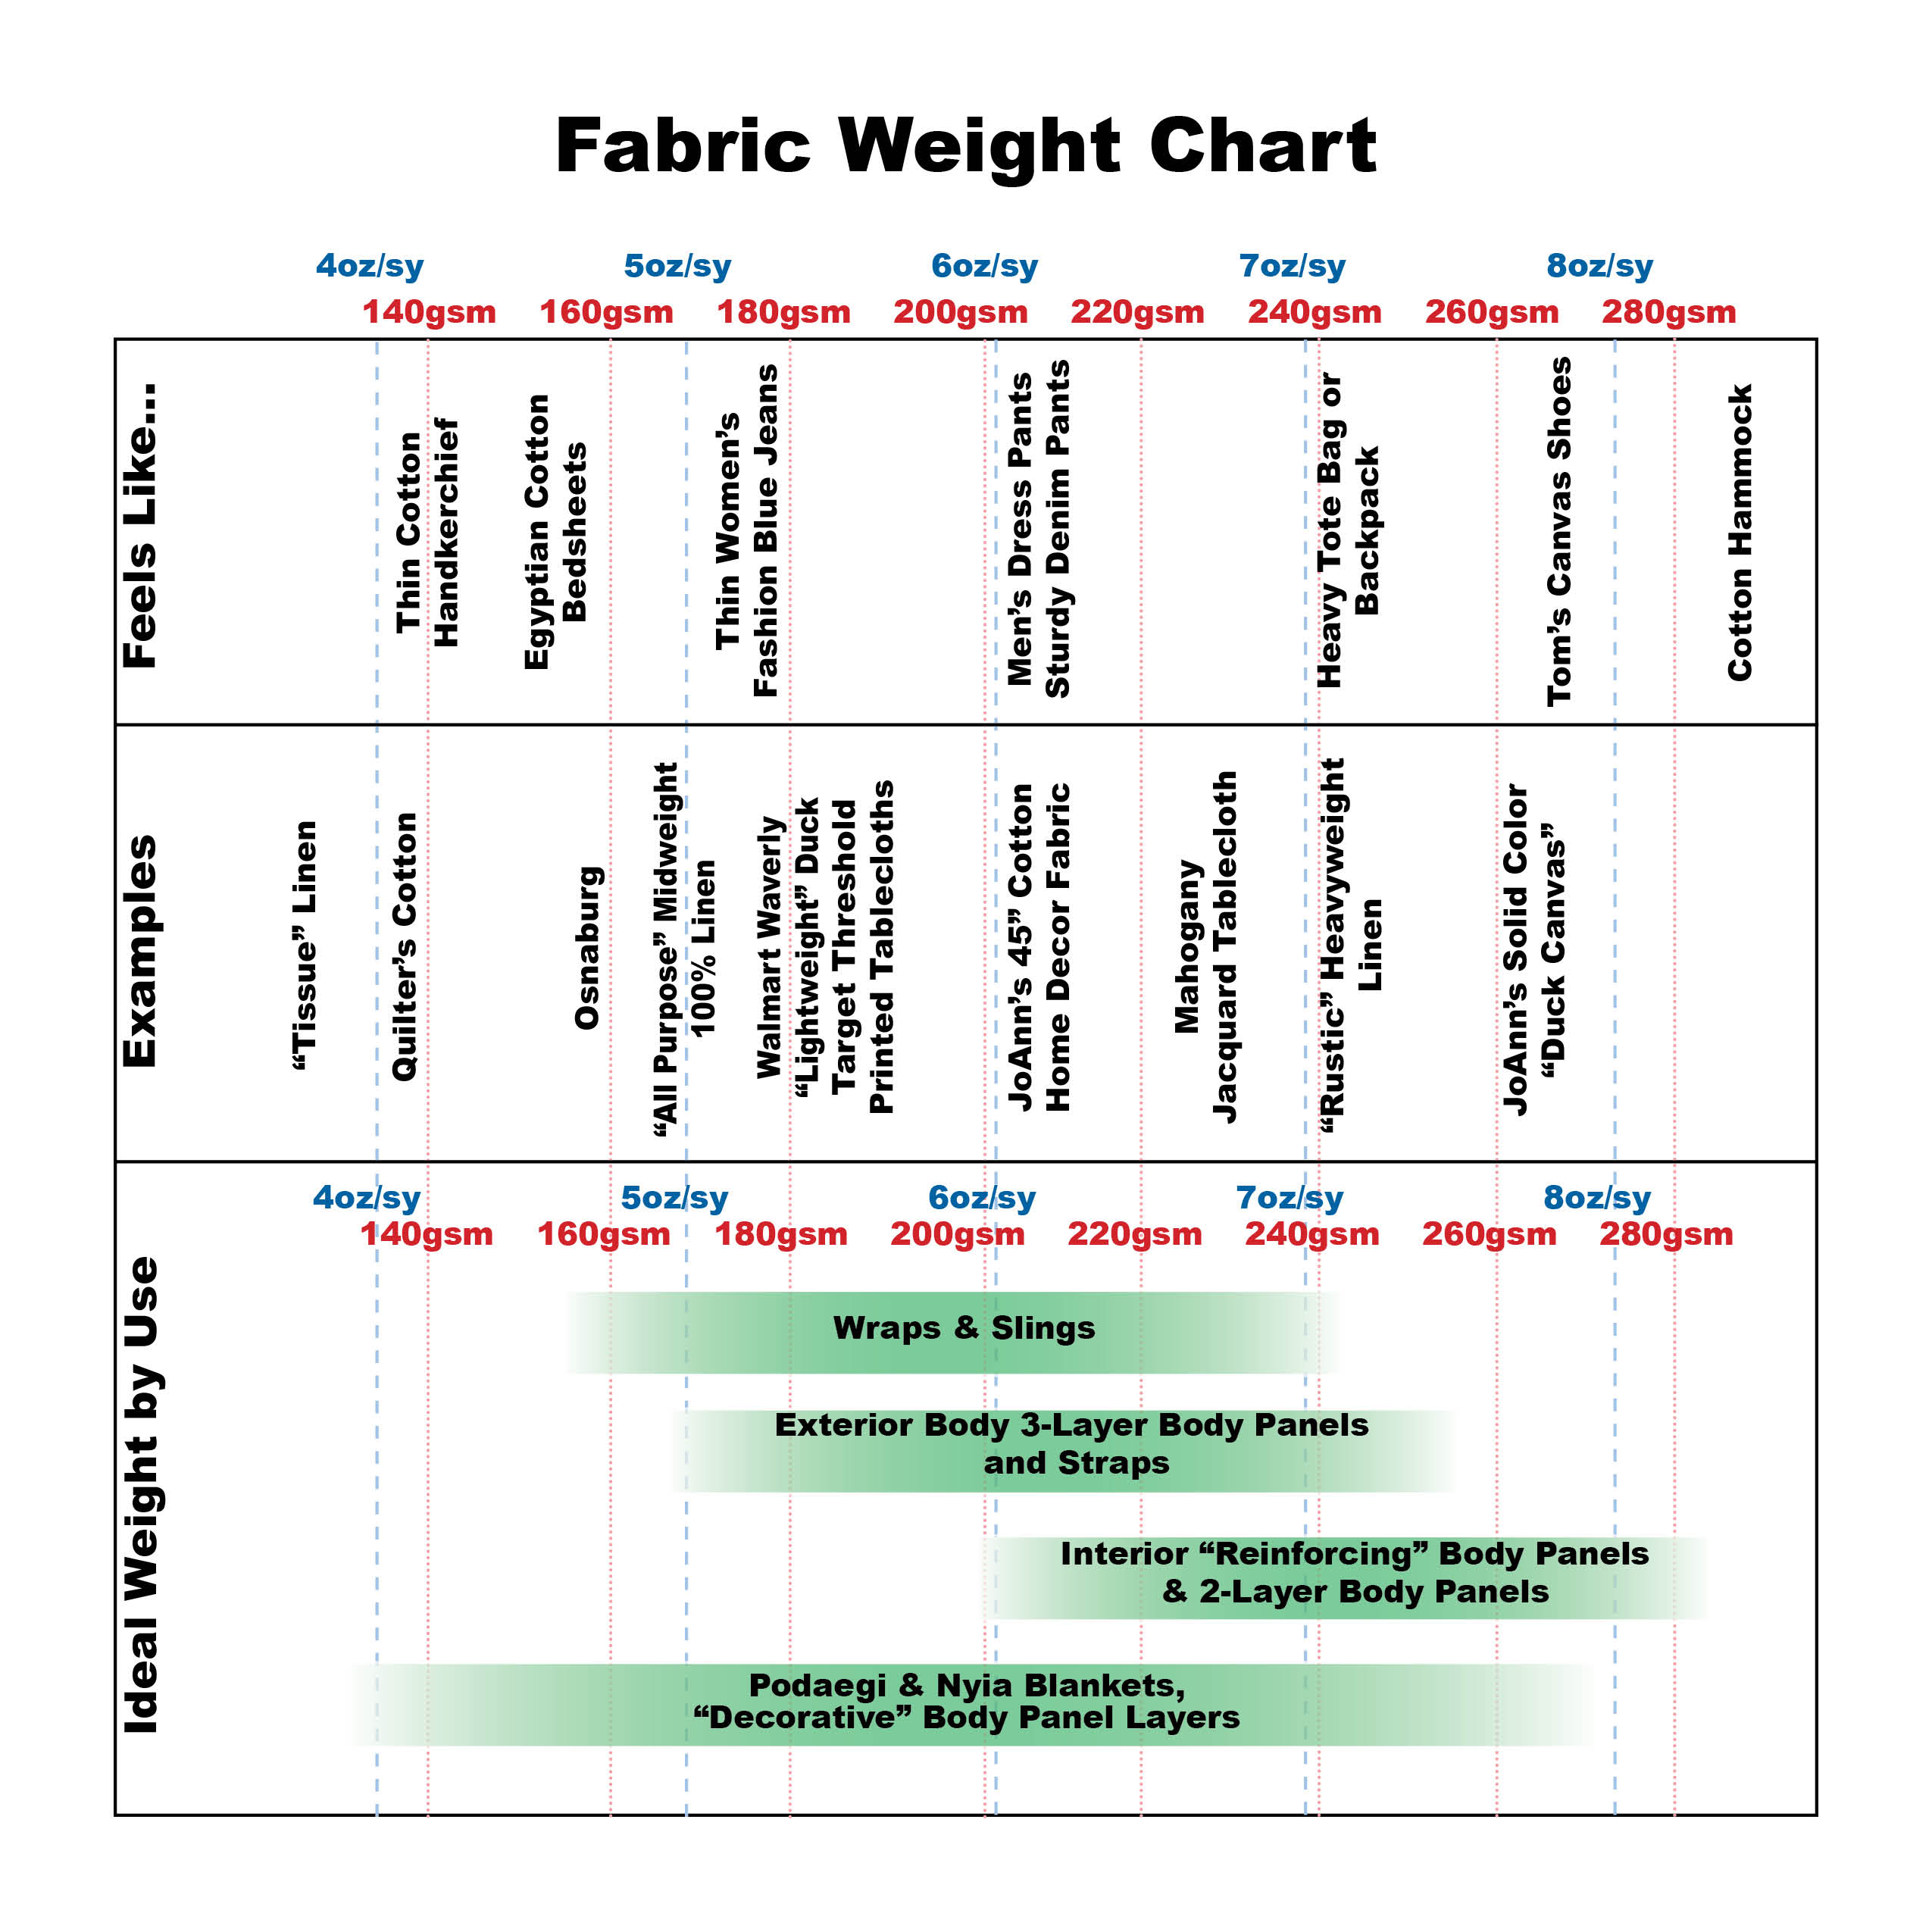 Fabric_Weight_Chart.jpg